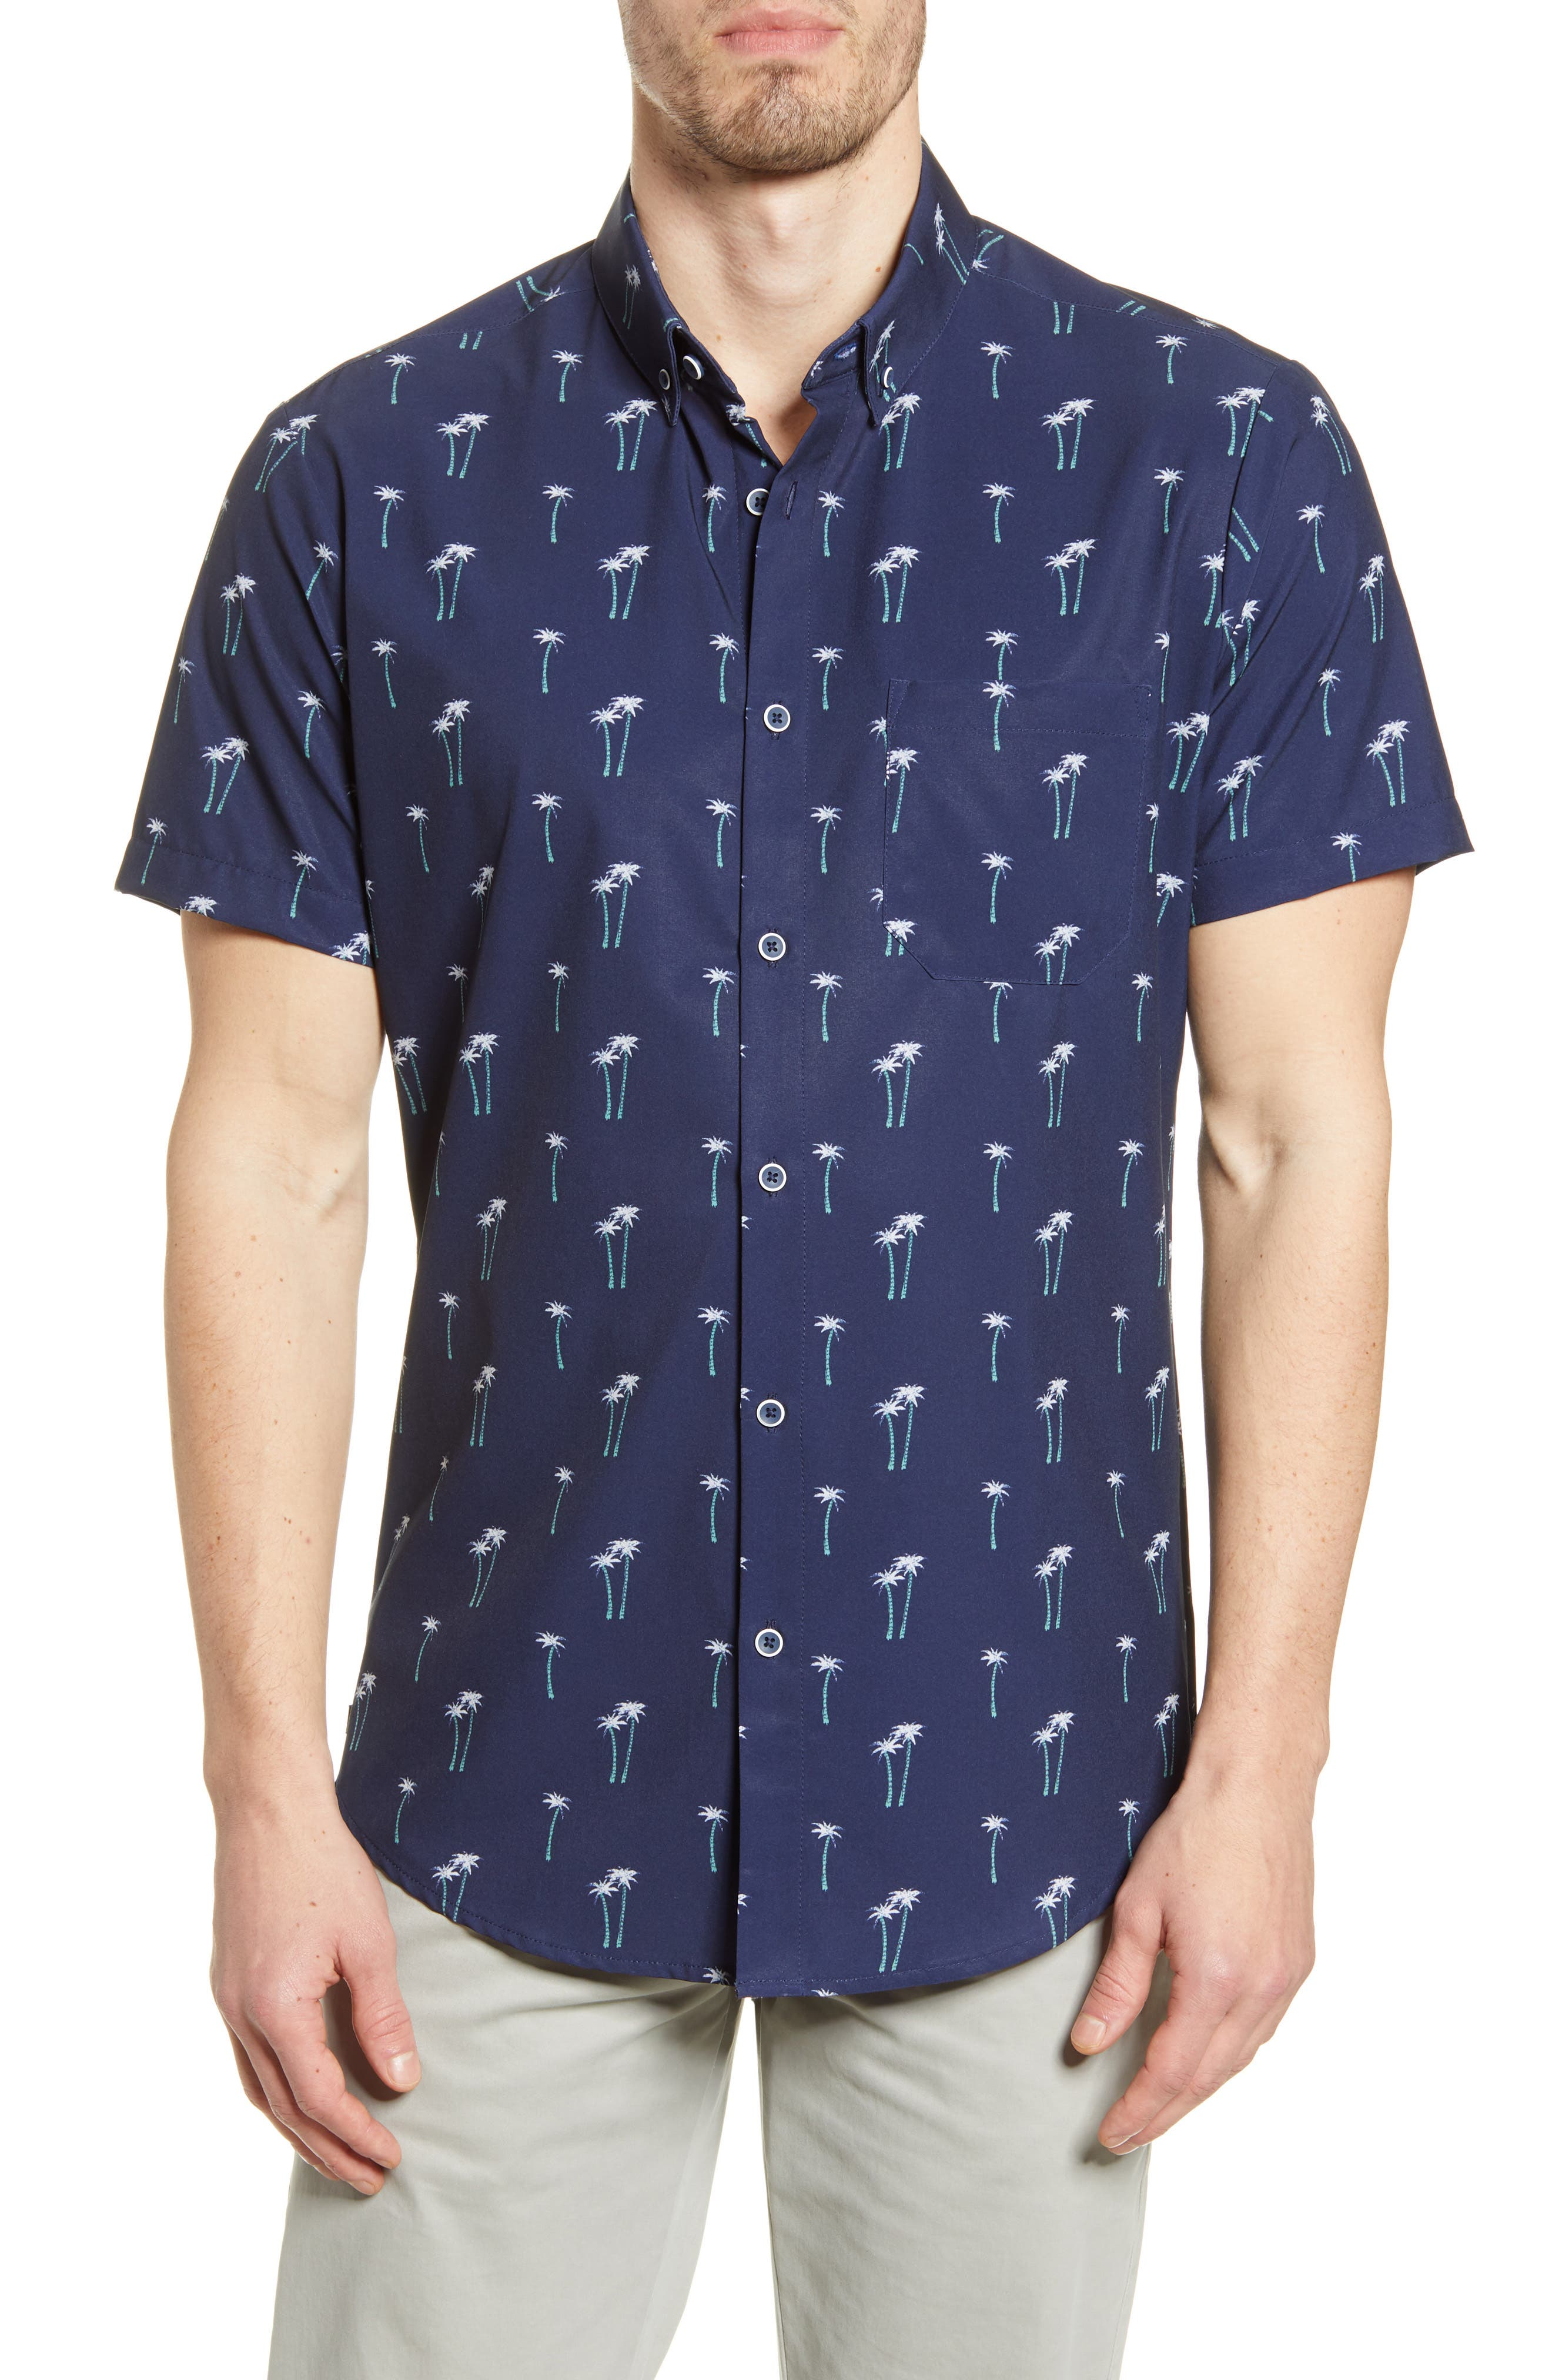 Queen of Cases Surf Boards Retro Style Mens Button Down Short Sleeve Shirt